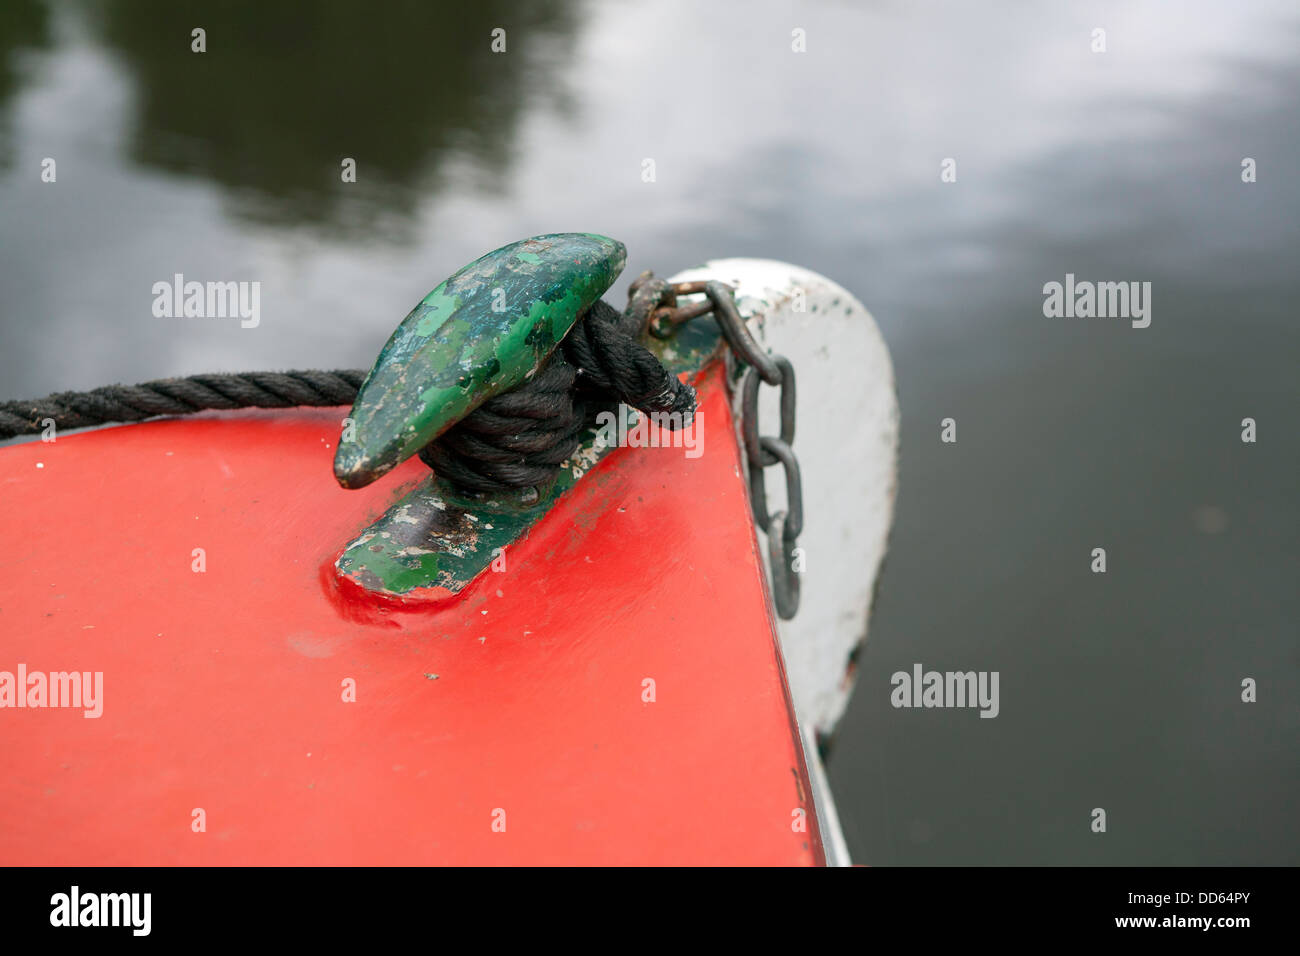 The bow of a Narrow boat's (barge) Iron fixing point, the boat is painted in bright red and green. The paint - Stock Image